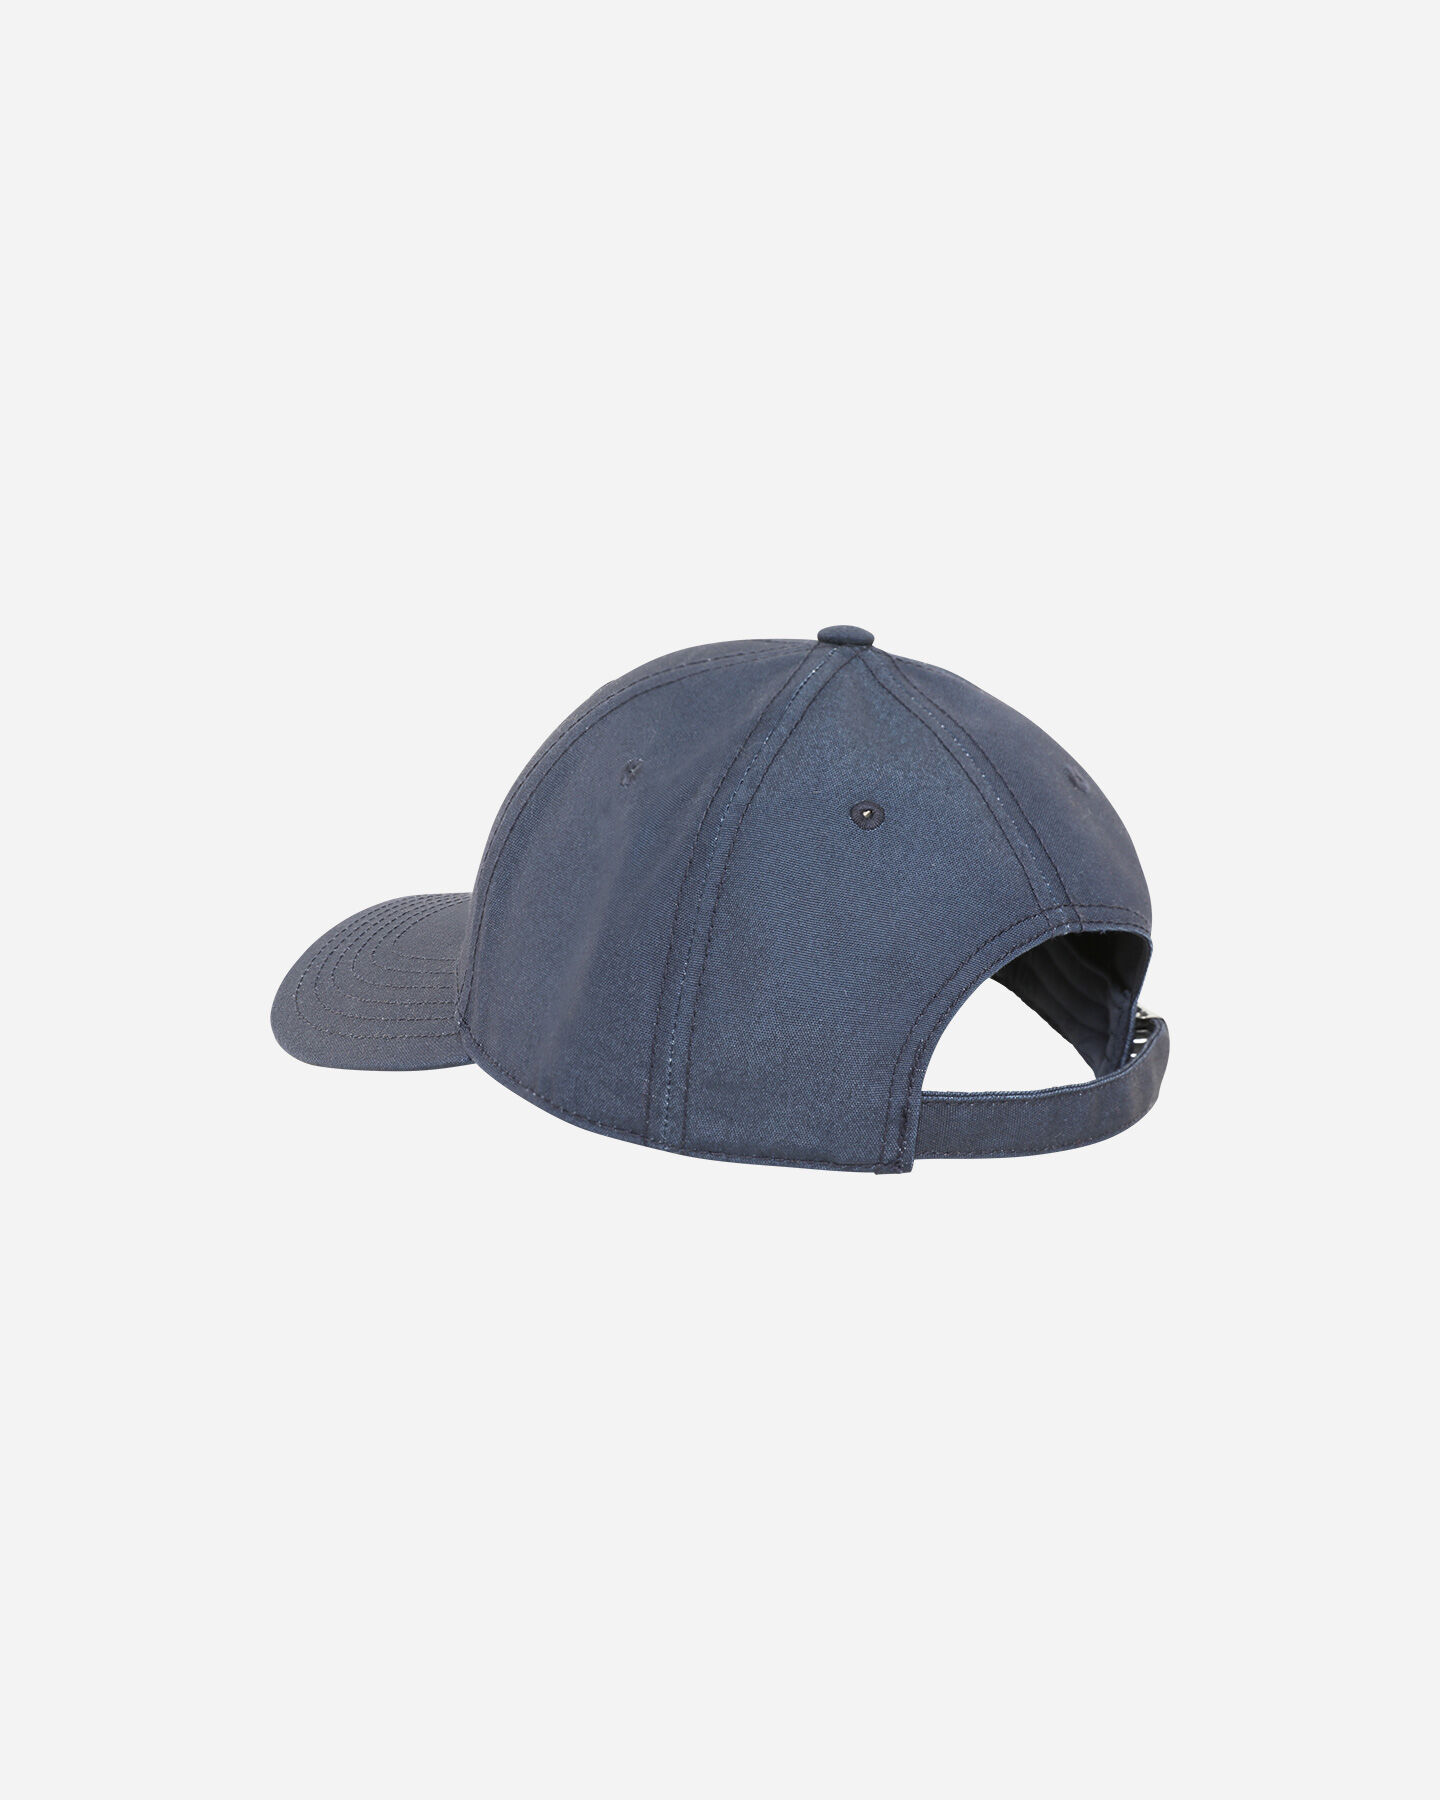 Cappellino THE NORTH FACE RECYCLED 66 CLASSIC S5243811|RG1|OS scatto 1